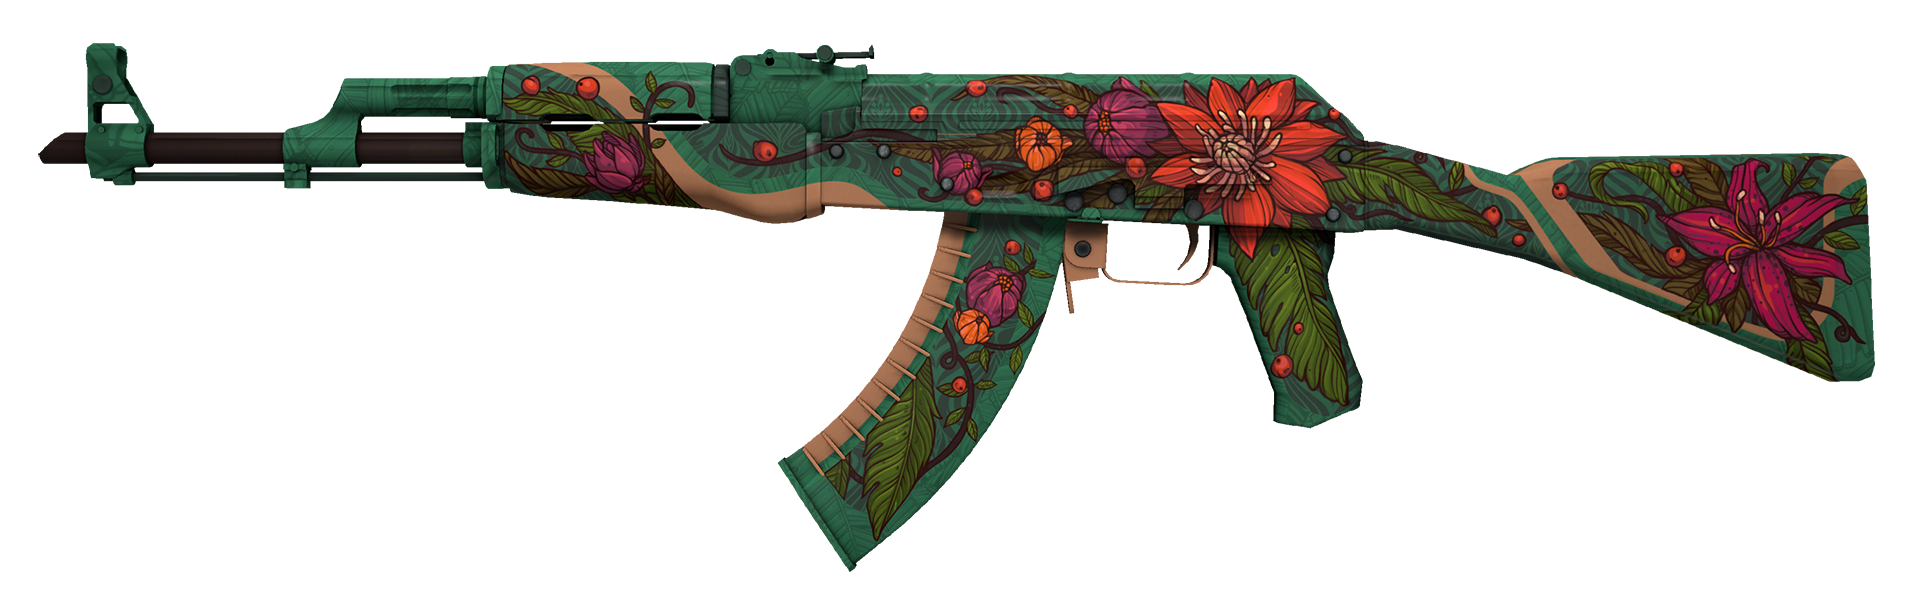 AK-47 Wild Lotus Large Rendering